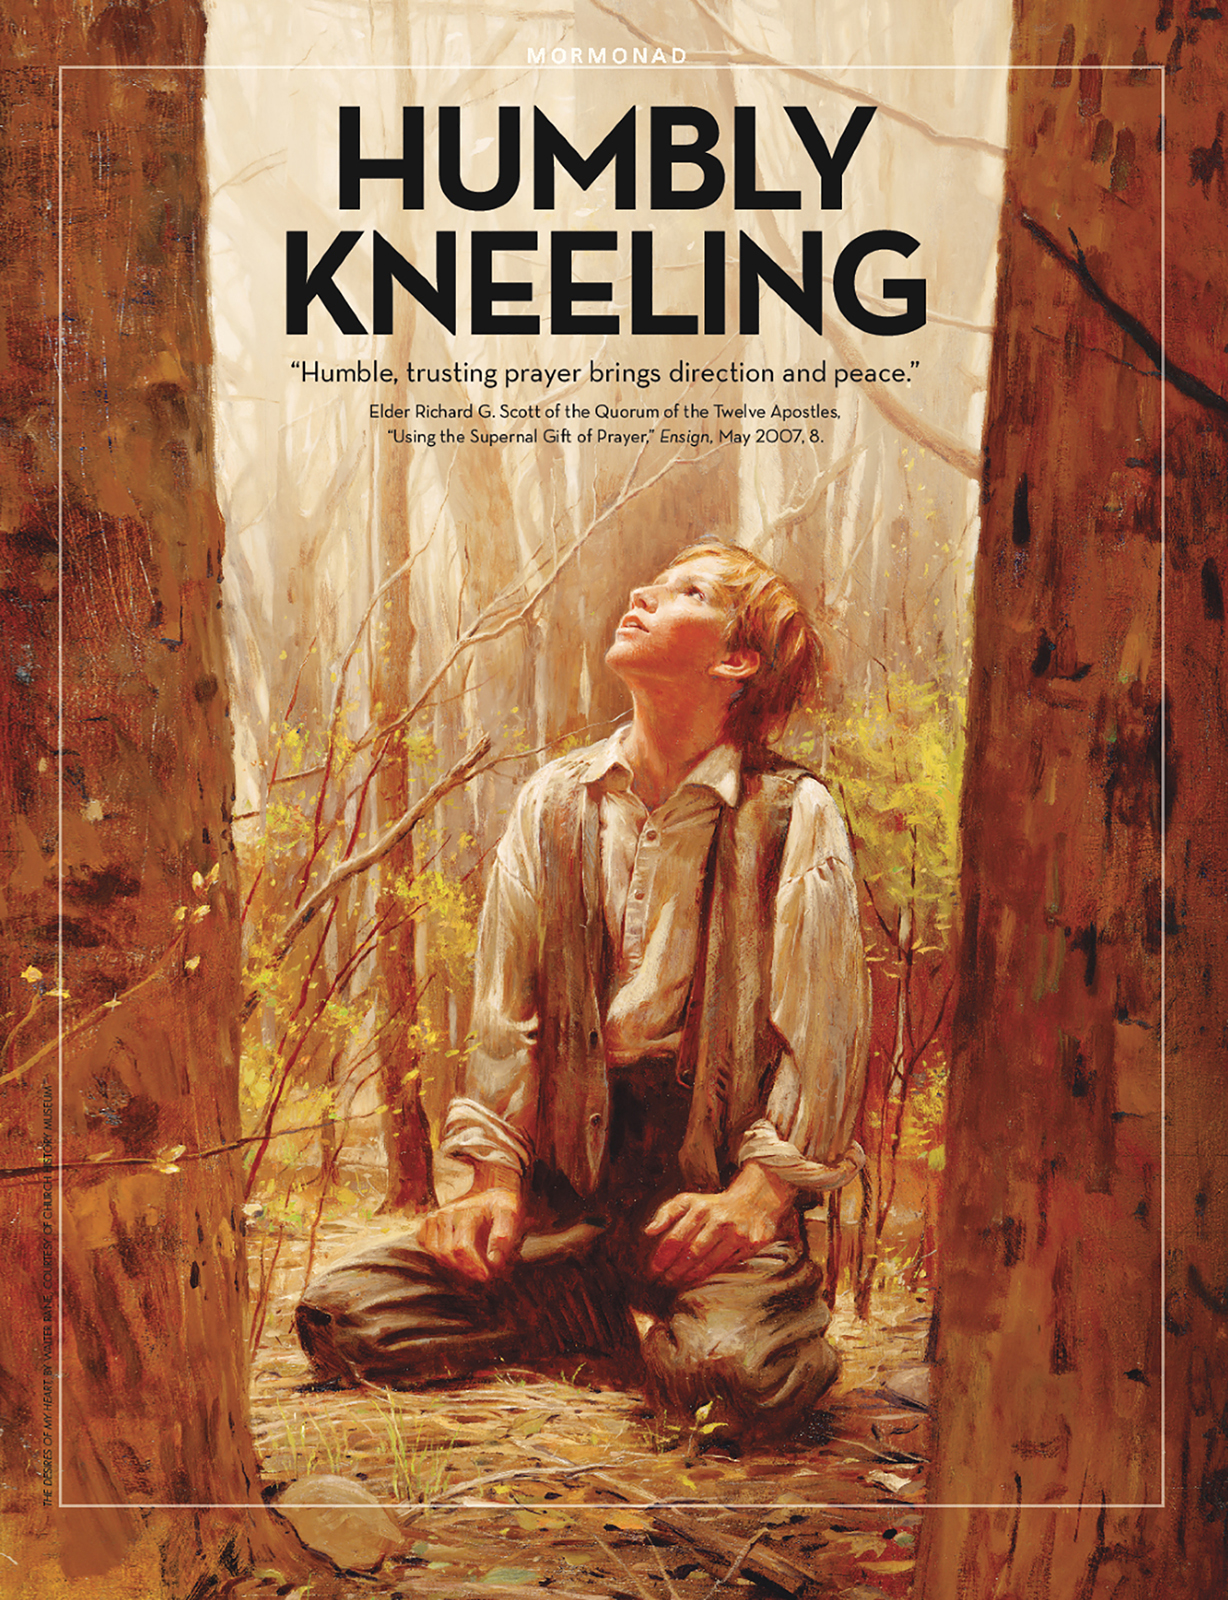 Humbly Kneeling